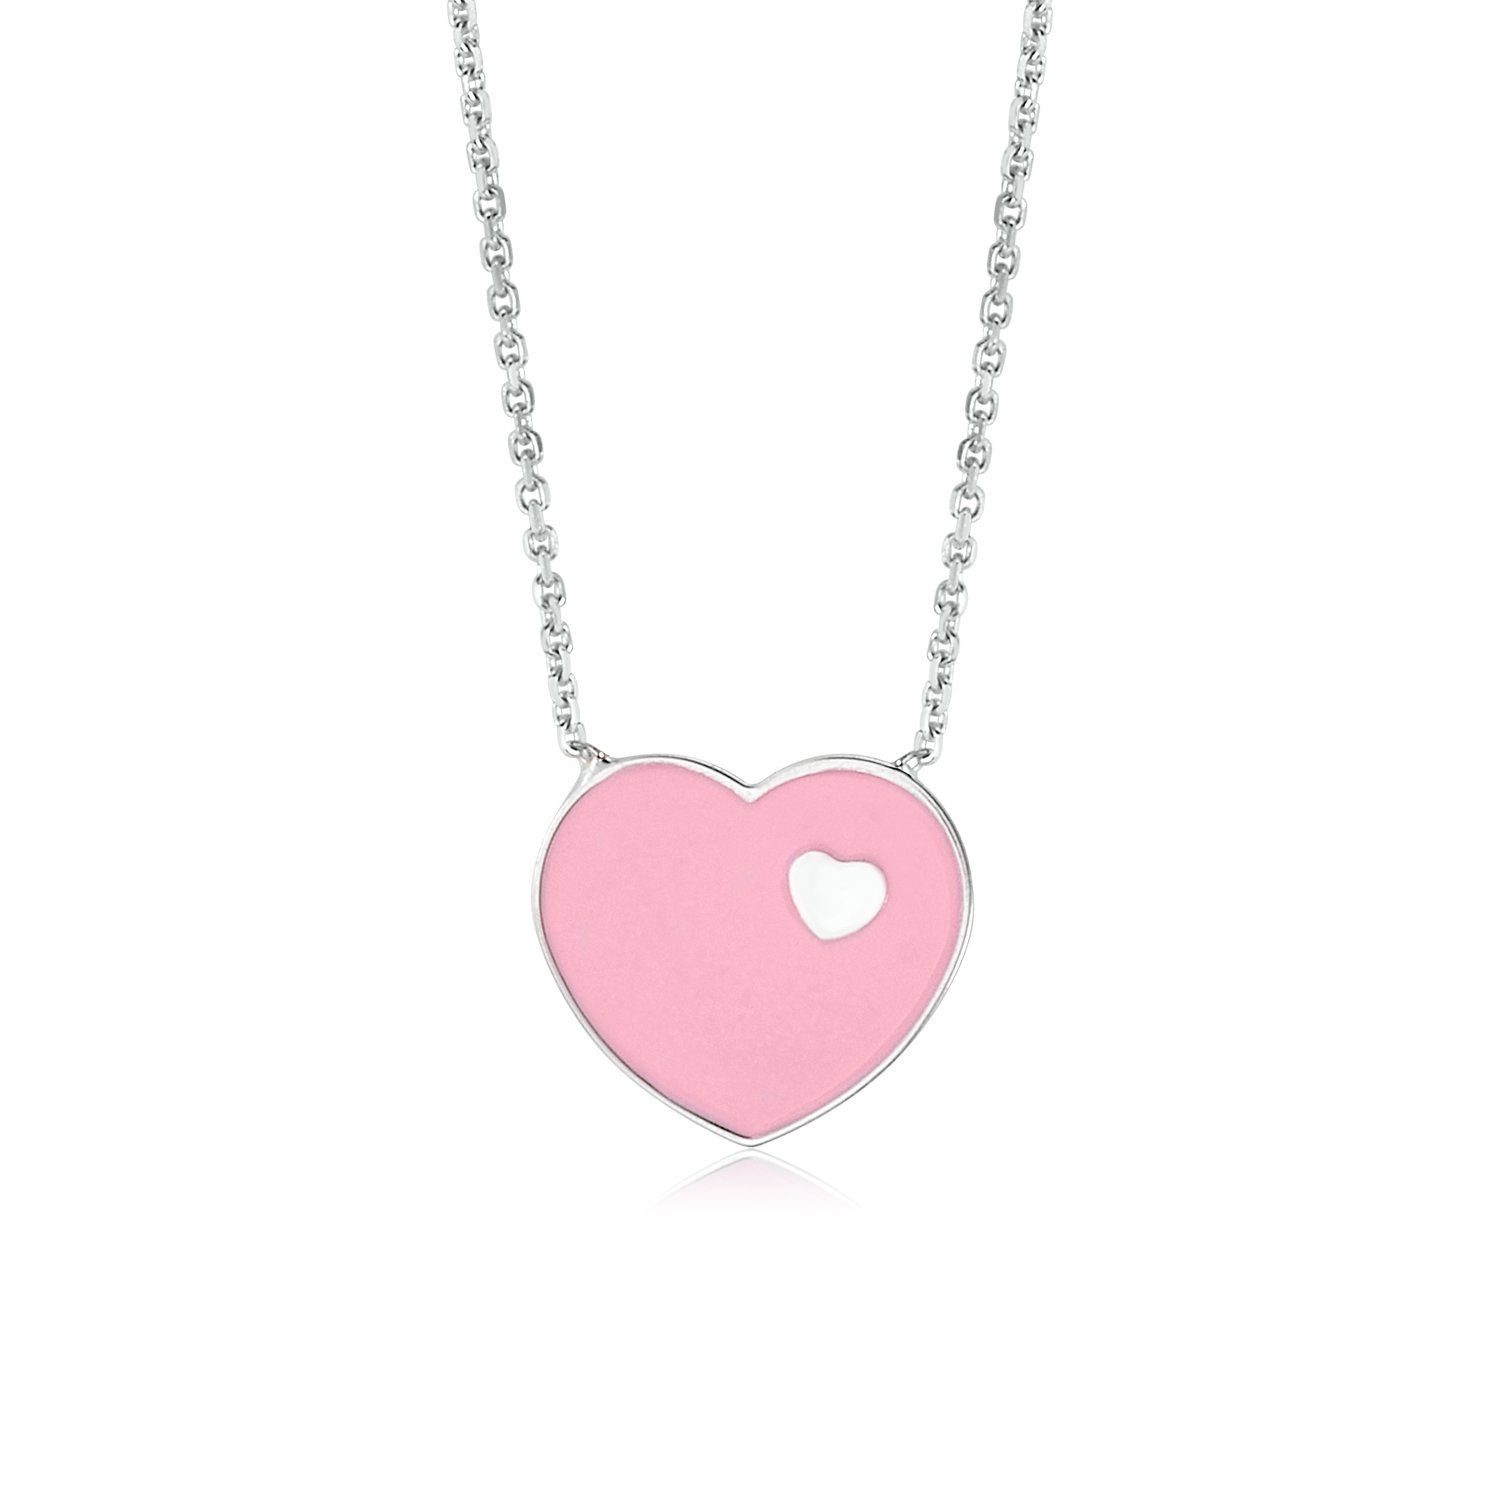 UNICORNJ 14K White Gold Pink Enamel Heart on Heart Pendant Necklace 16 Inches Italy